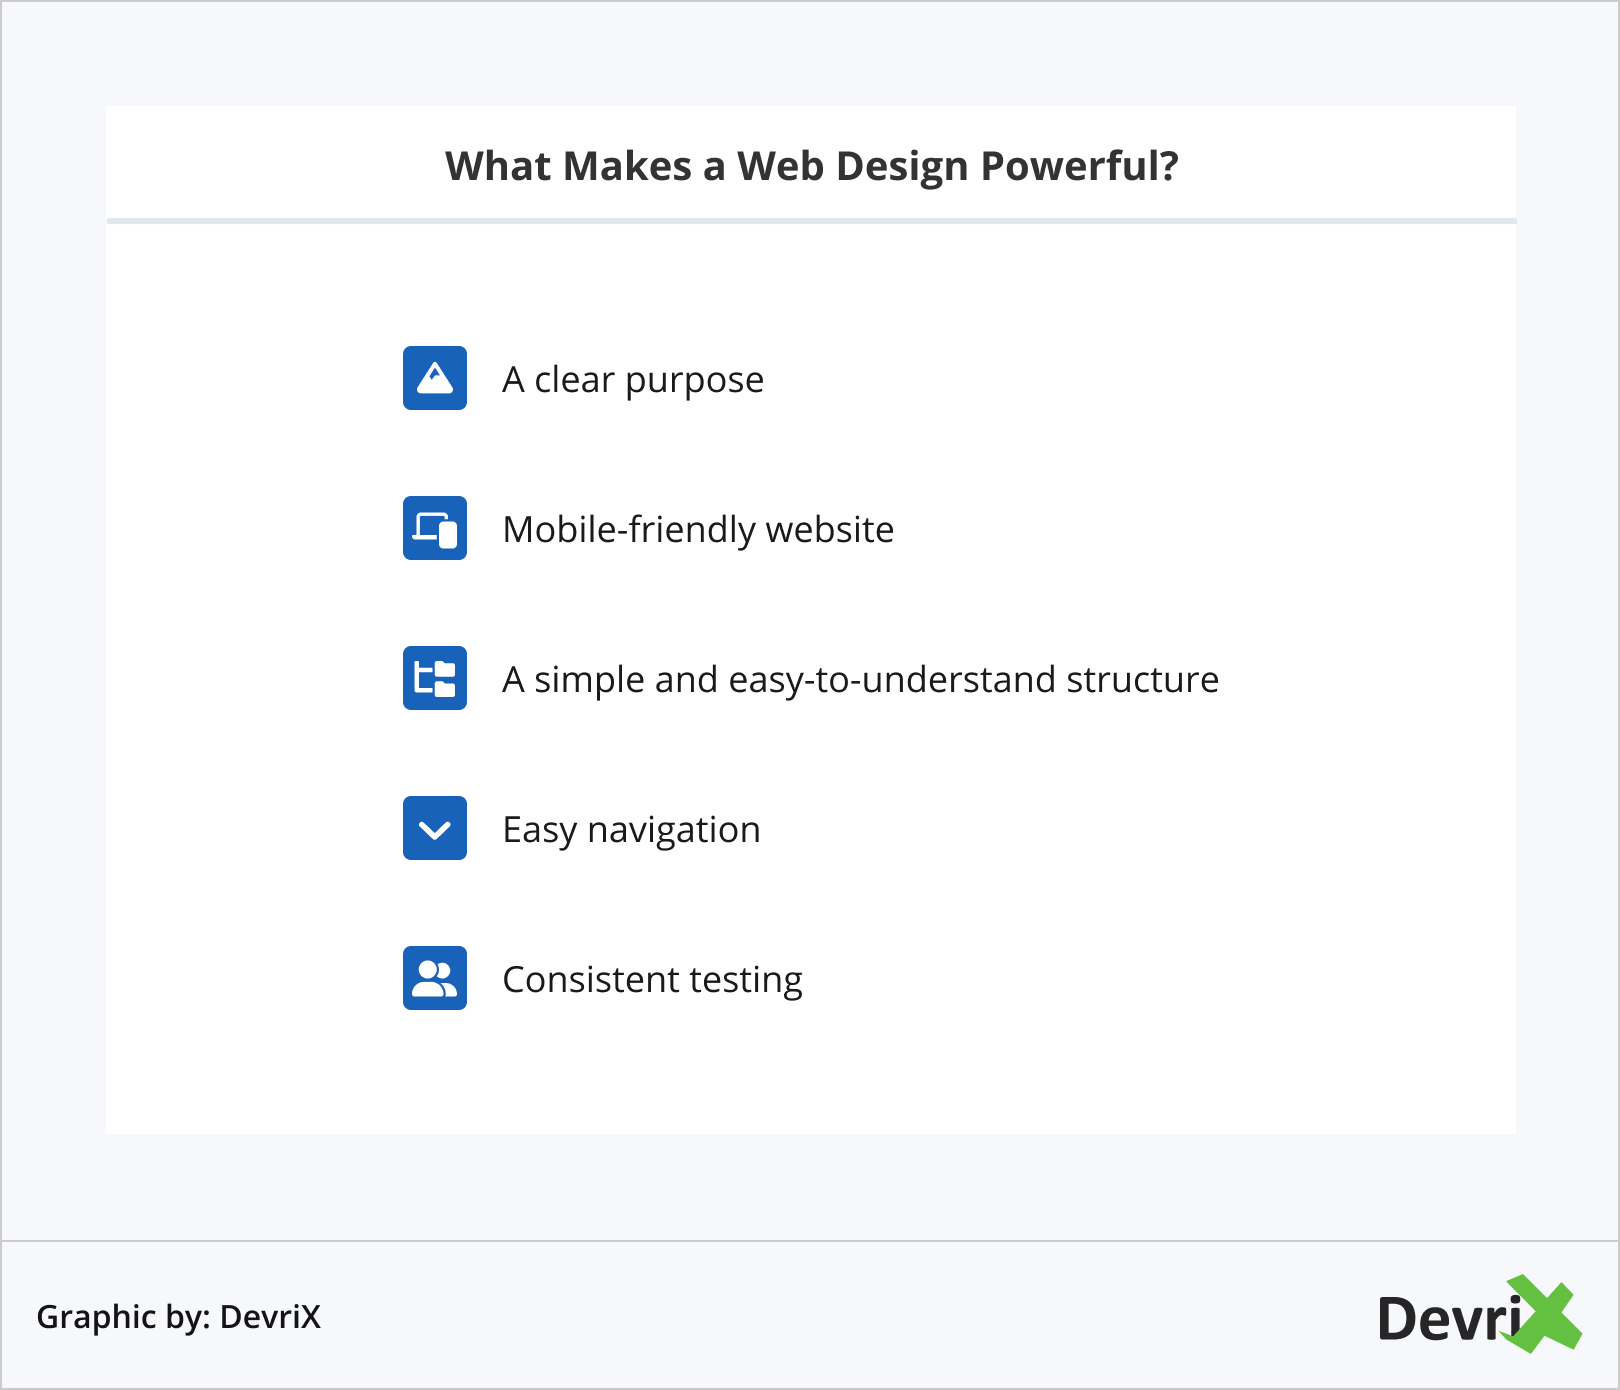 What Makes a Web Design Powerful